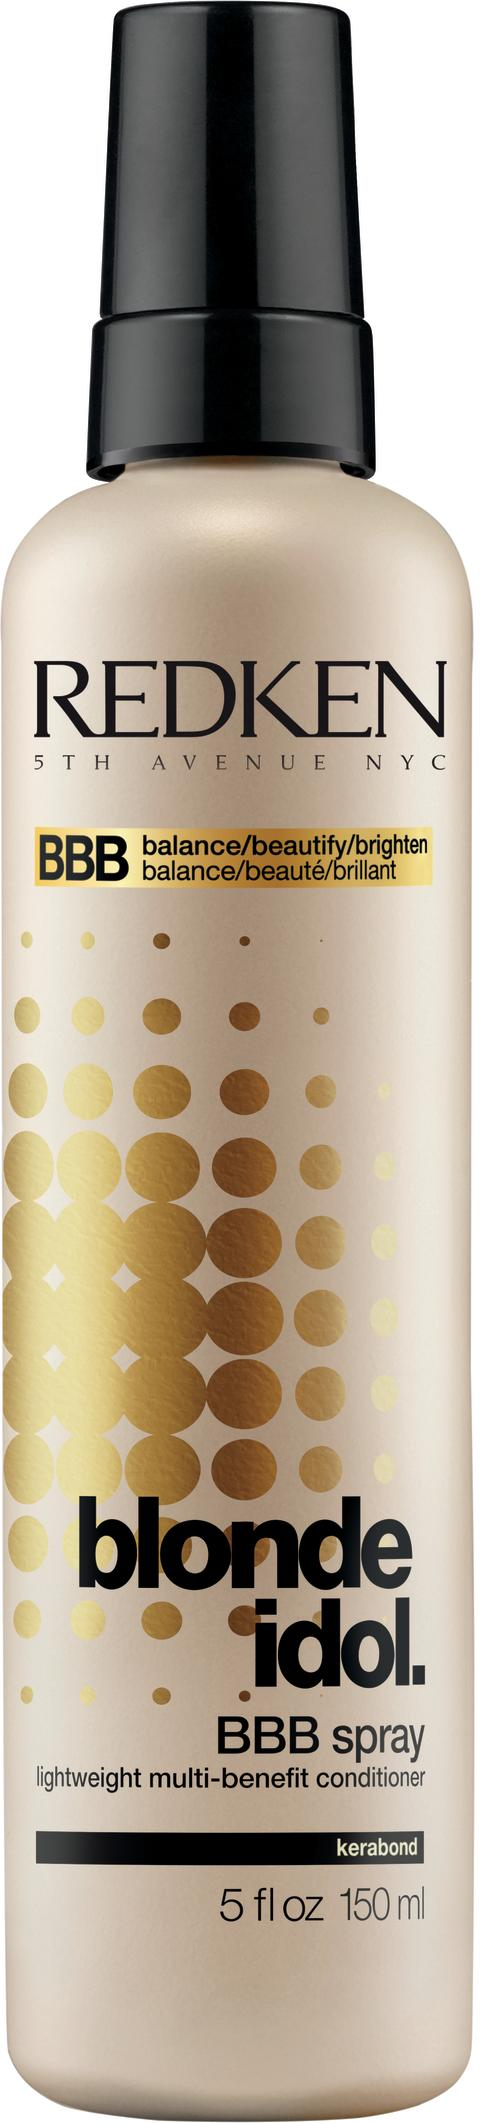 Redken Blonde Idol BBB Spray 360 kr